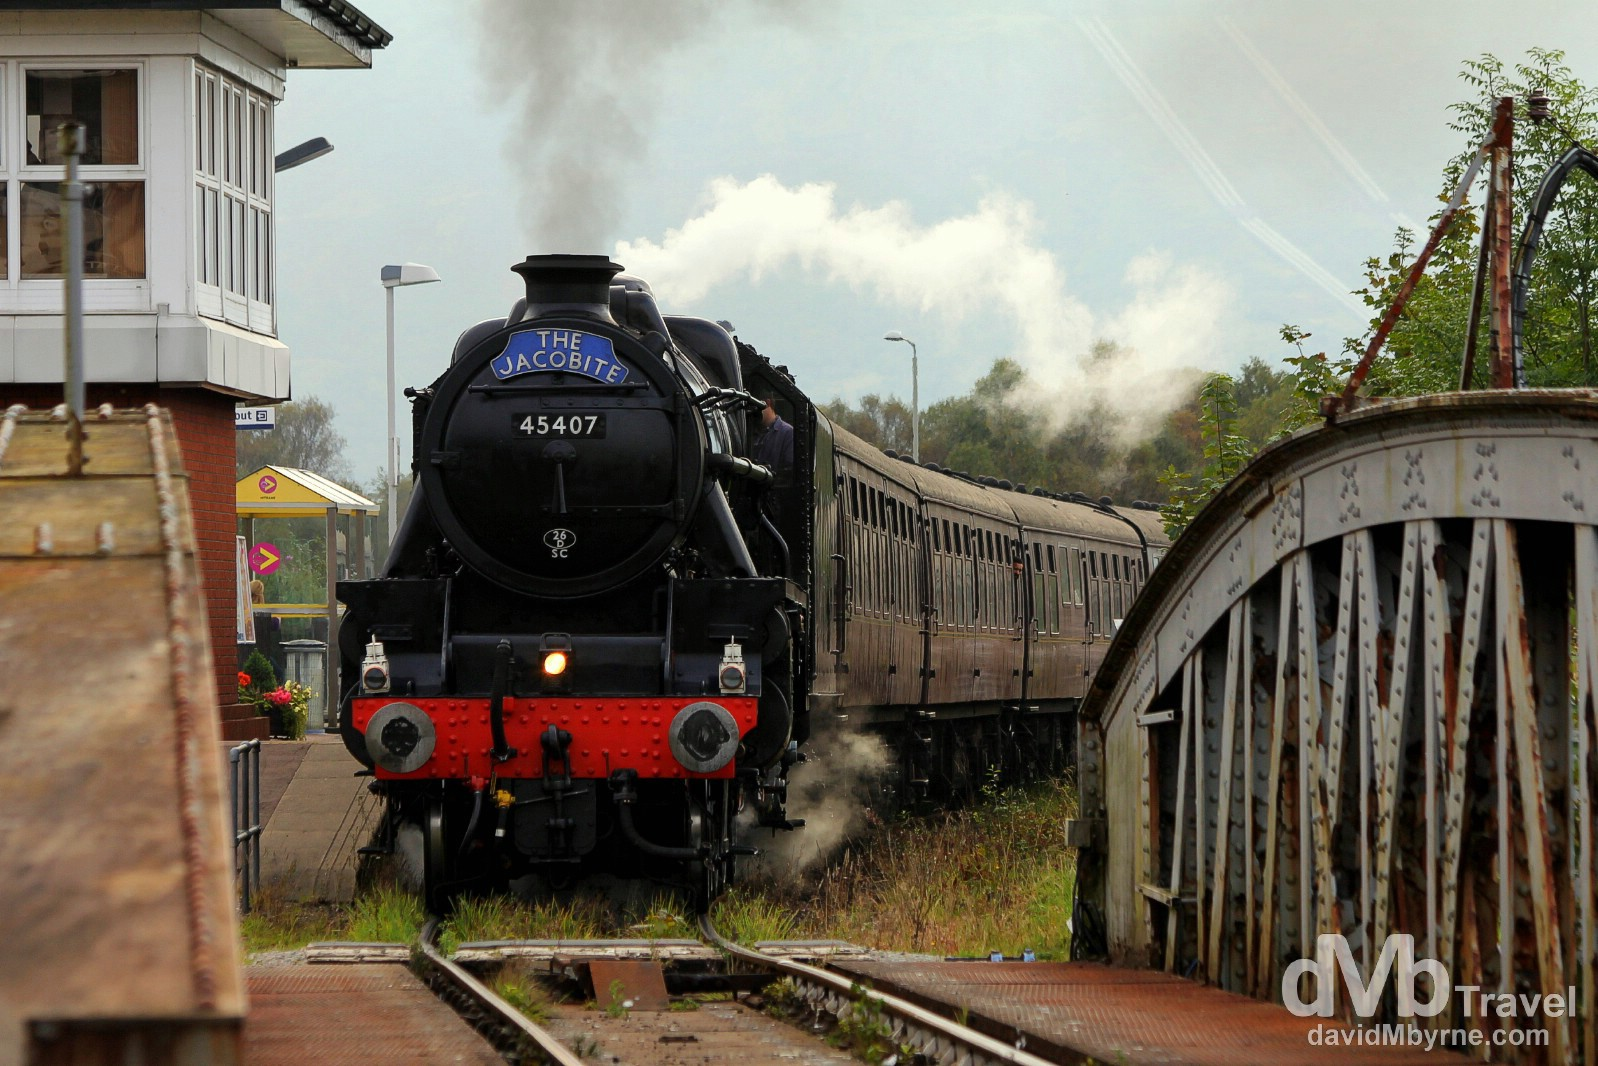 The famous Jacobite steam train passing through Banavie station en route from Fort William to Mallaig in Highland, Scotland. September 18, 2014.